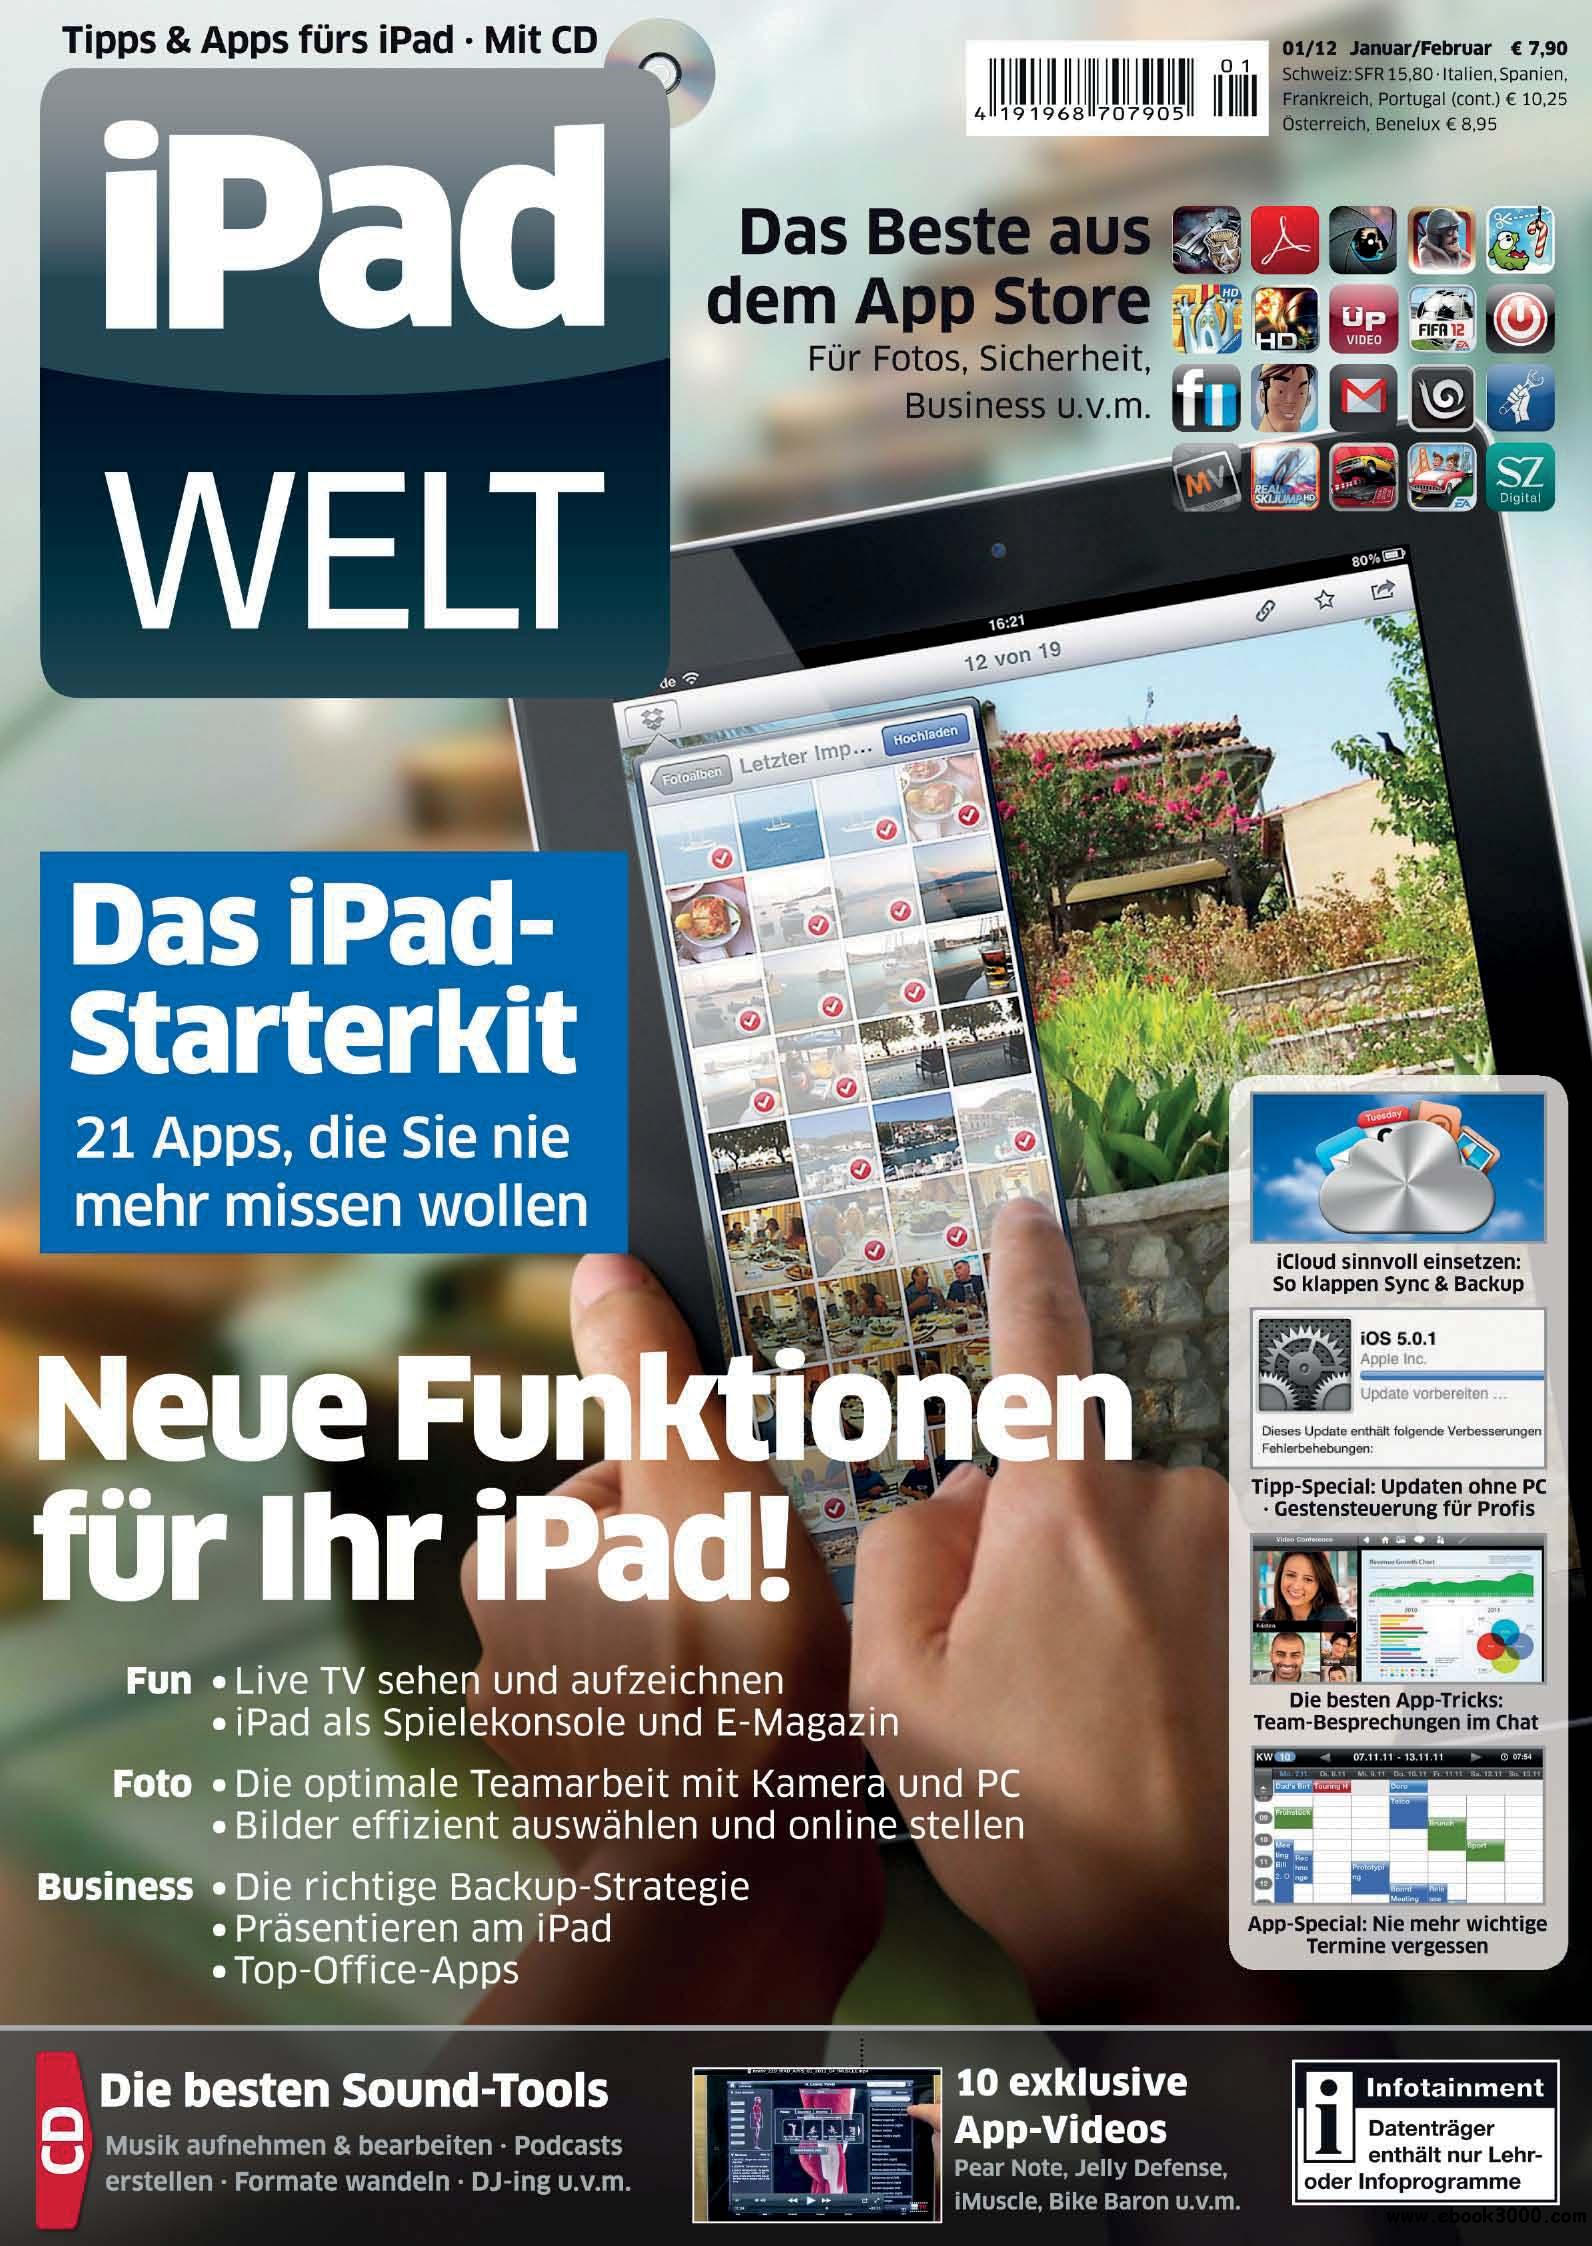 iPad Welt 01/2012 Januar/Februar free download